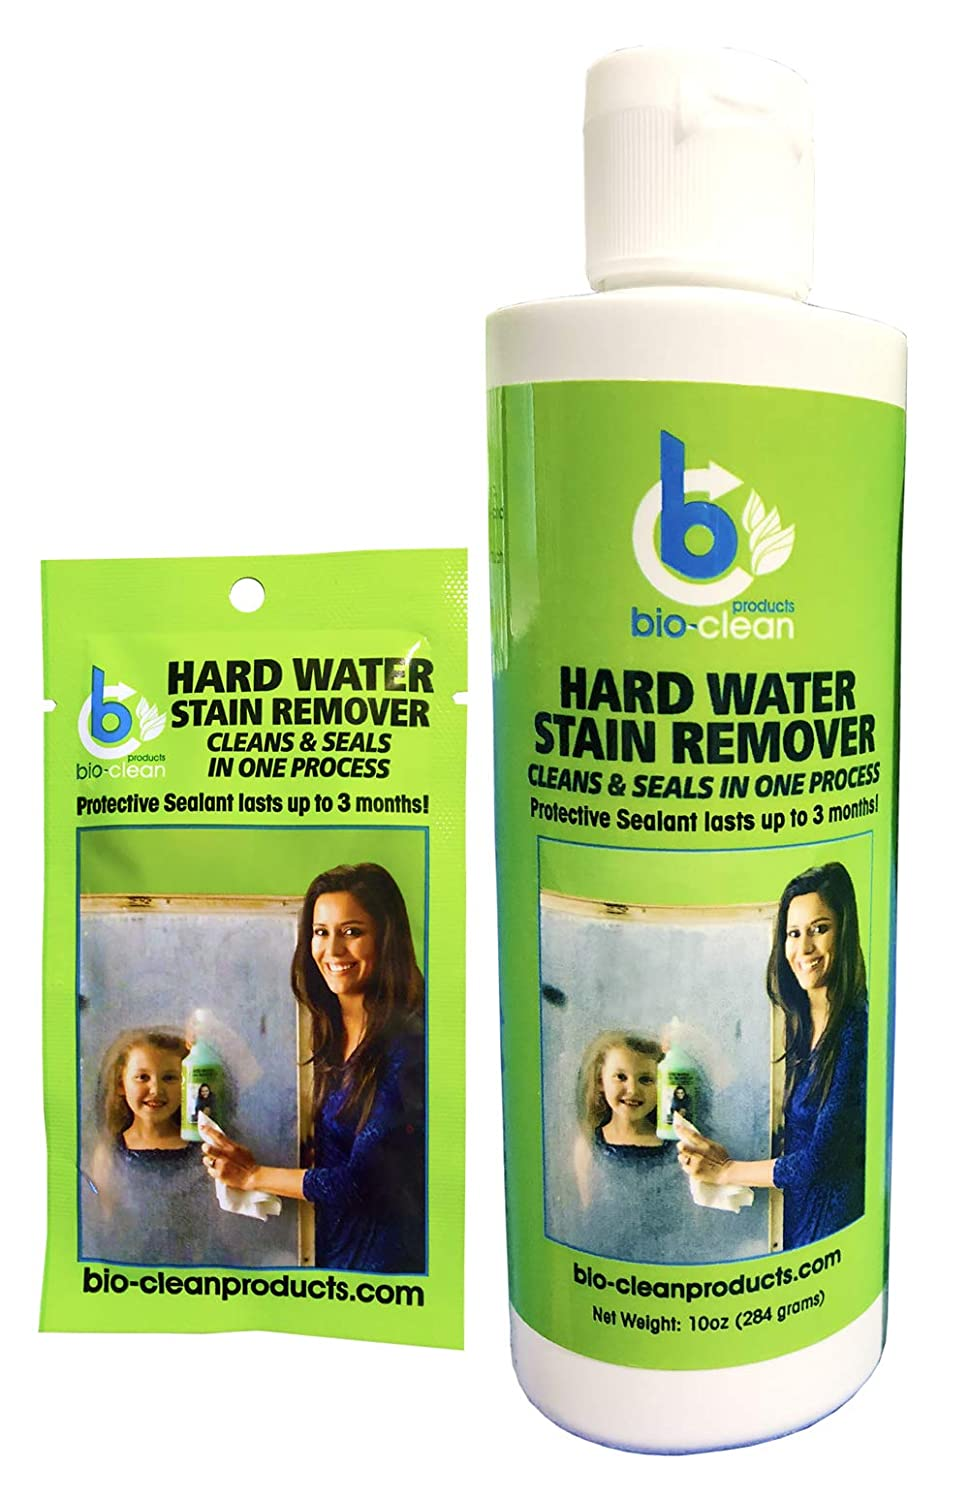 Amazon.com: Bio Clean: Hard Water Stain Remover (10 Oz) - Our ...